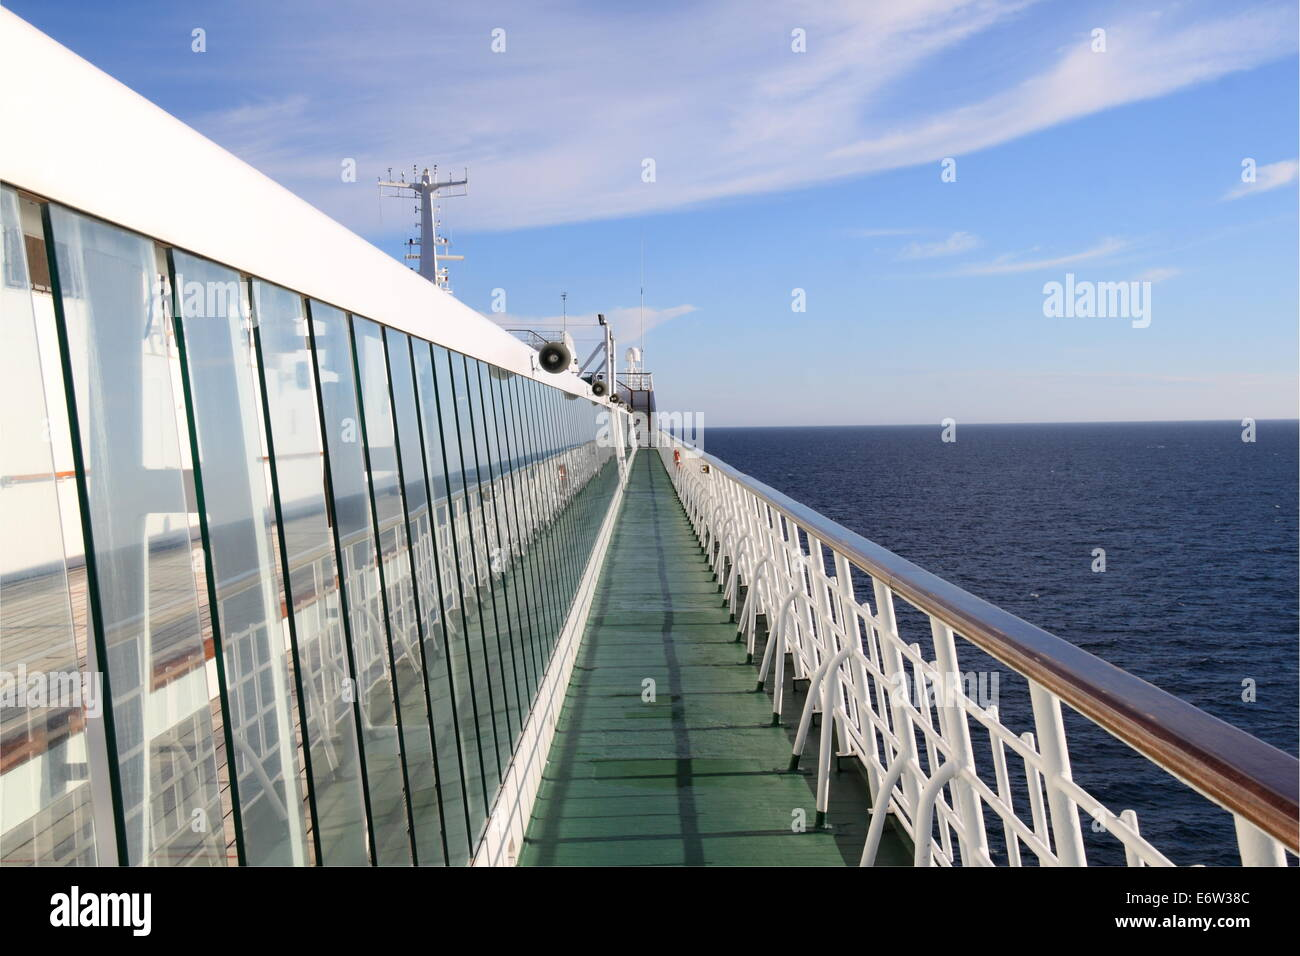 Sun Deck, P&O Cruises Oriana, Norway 2014 - Stock Image